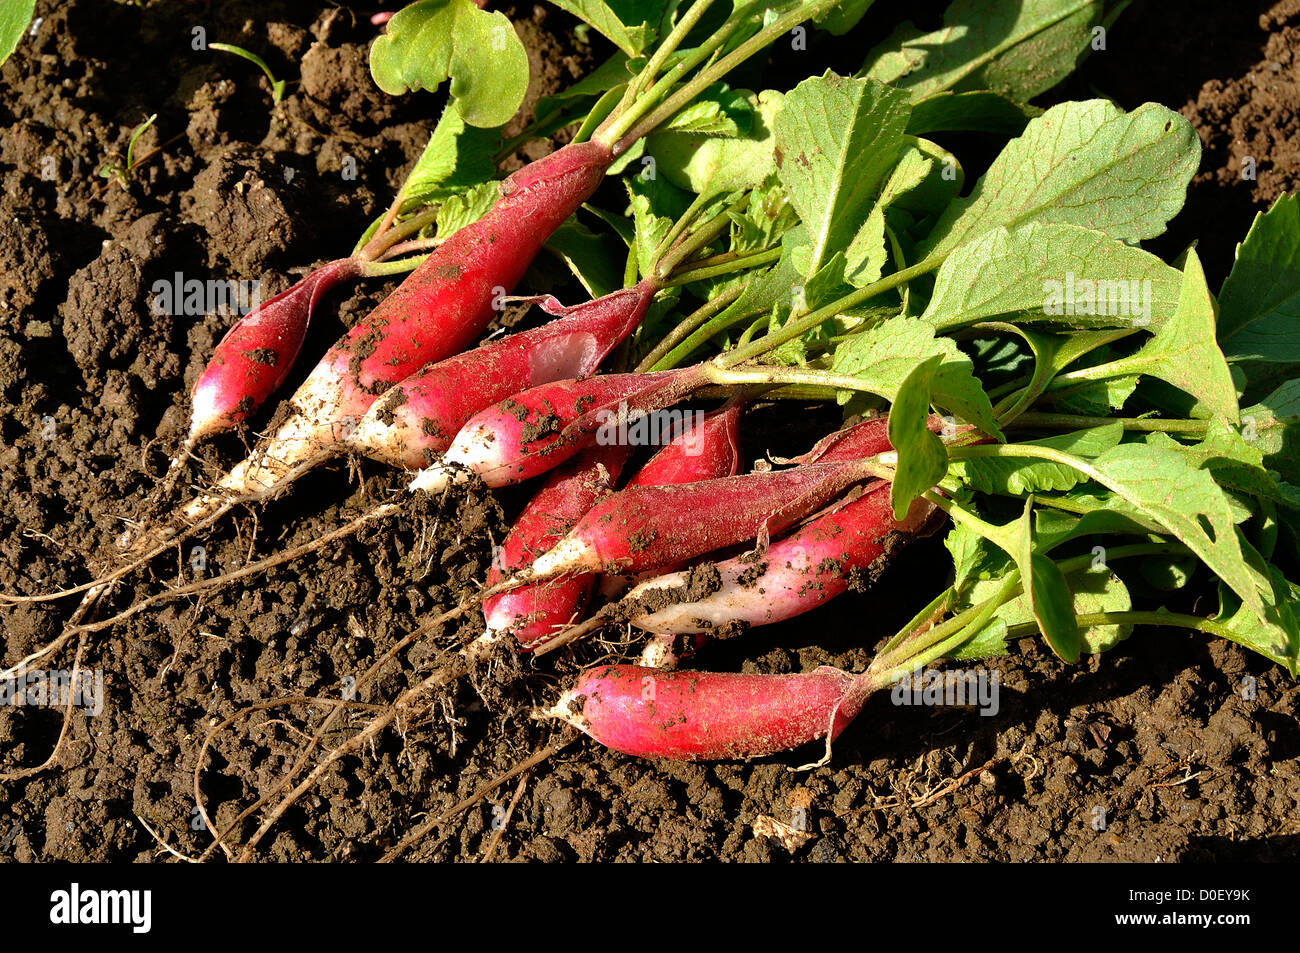 Bunch of fresh radishes (Raphanus sativus) from the garden, variety : 'Radis de dix-huit mois'. - Stock Image